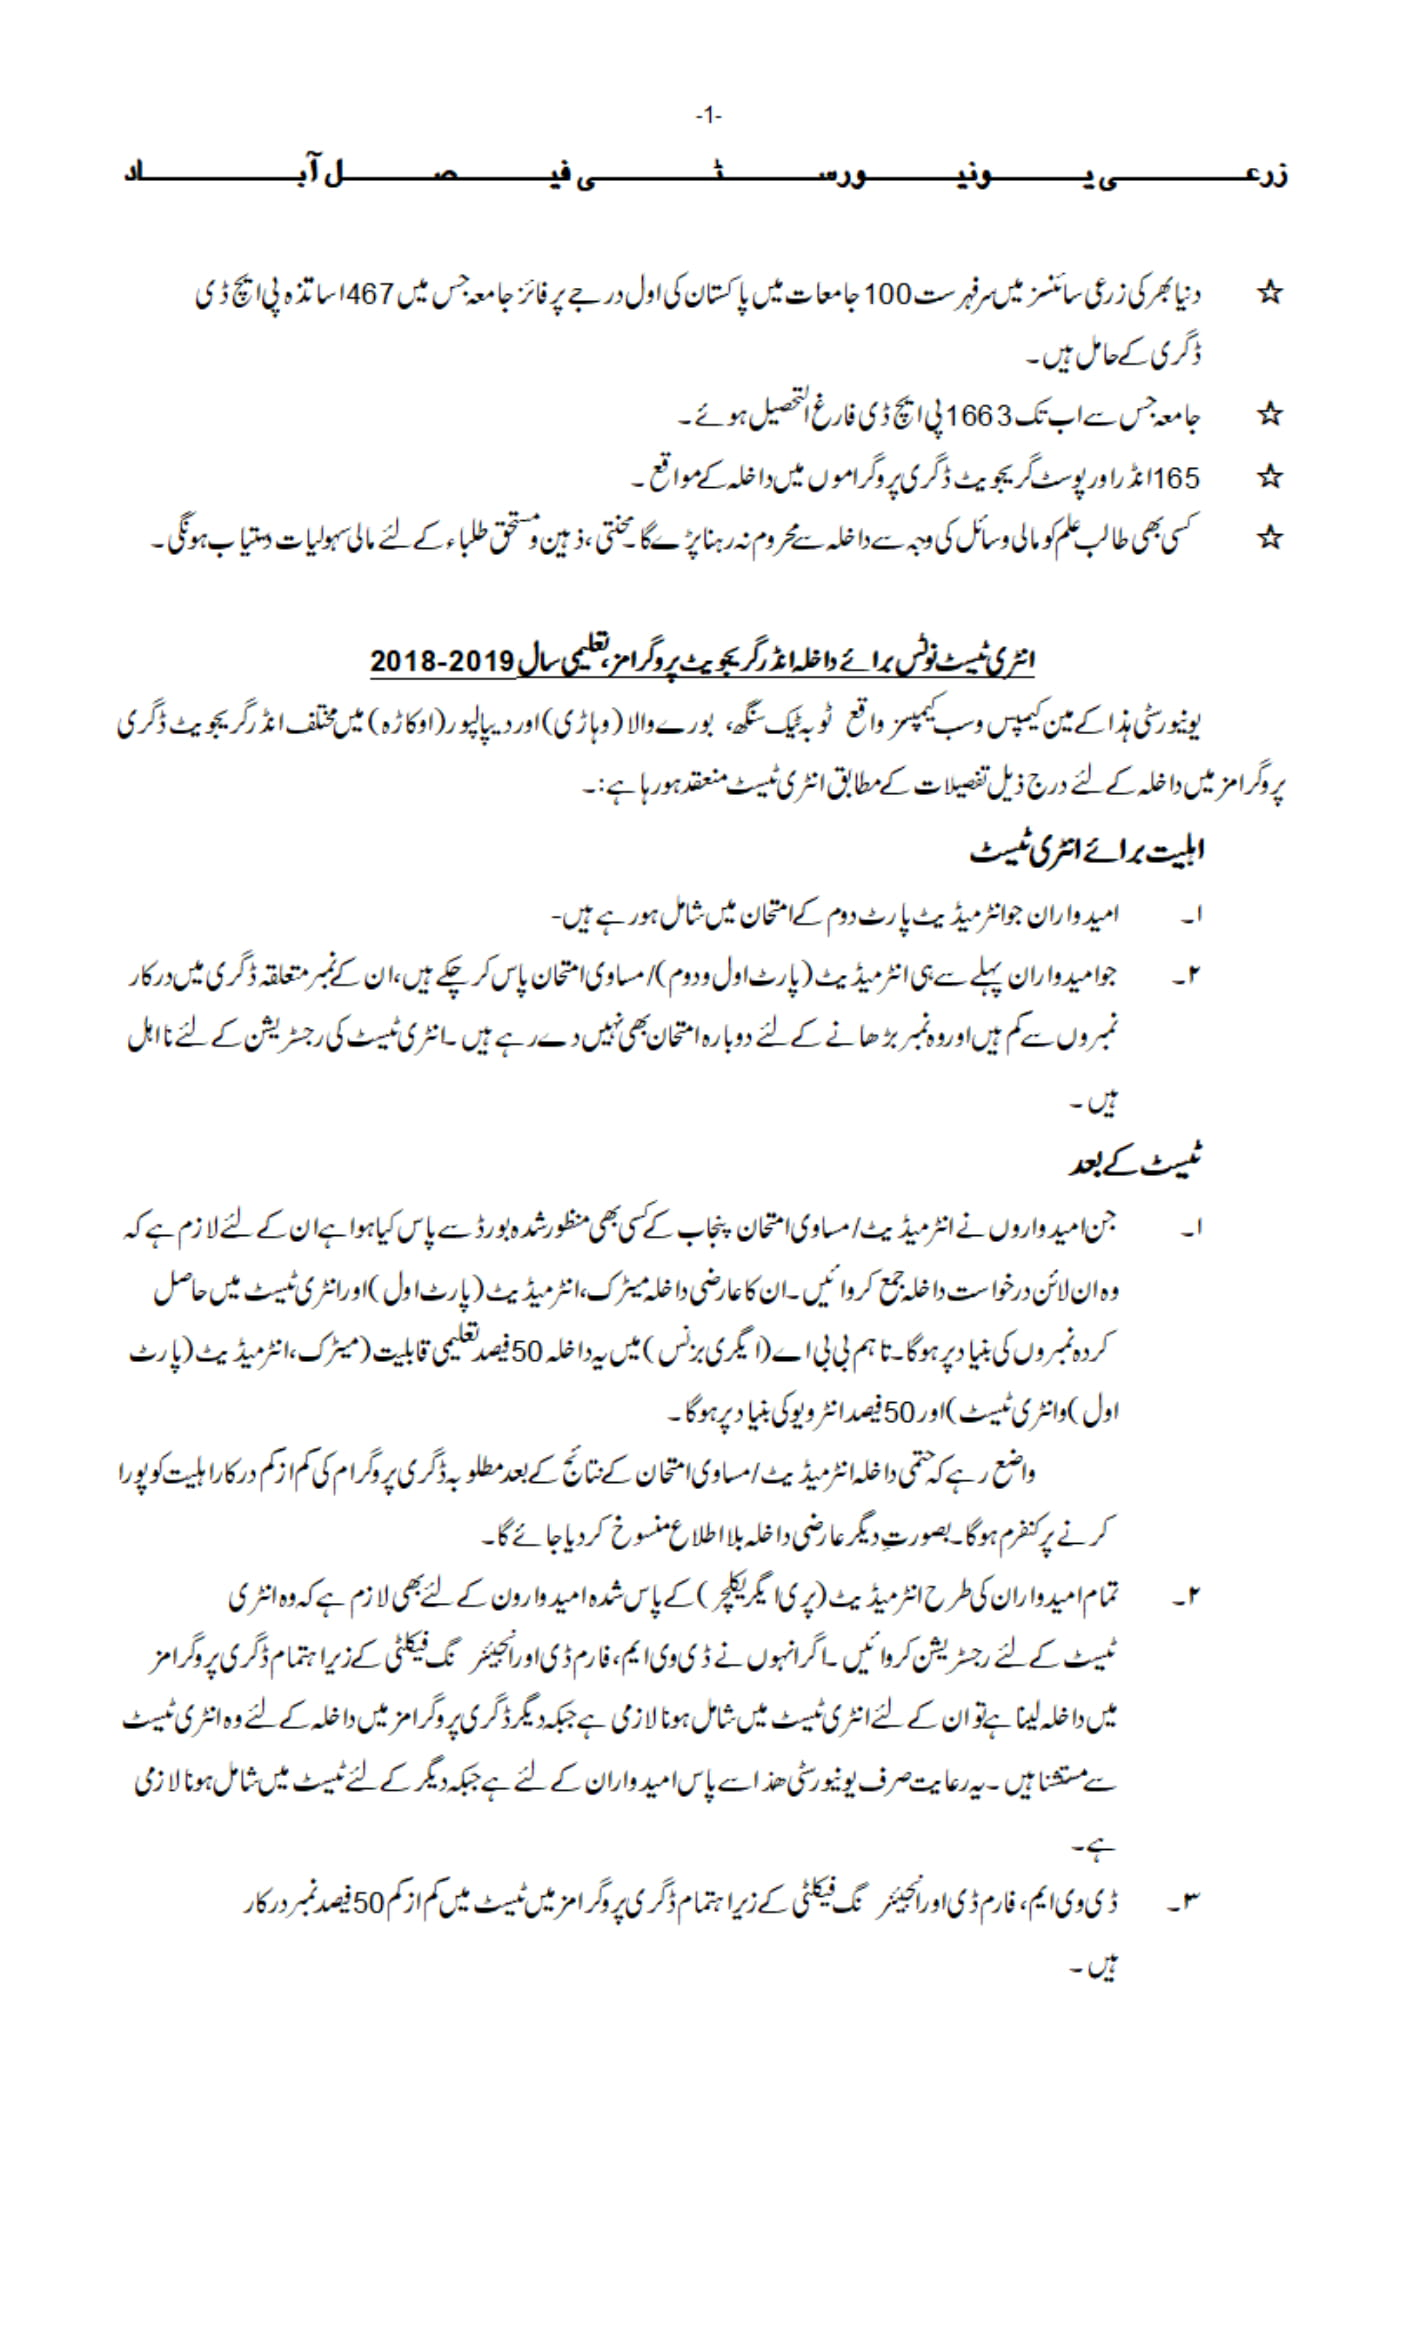 University of Agriculture Faisalabad (UAF) – First Entry Test Notice 2018